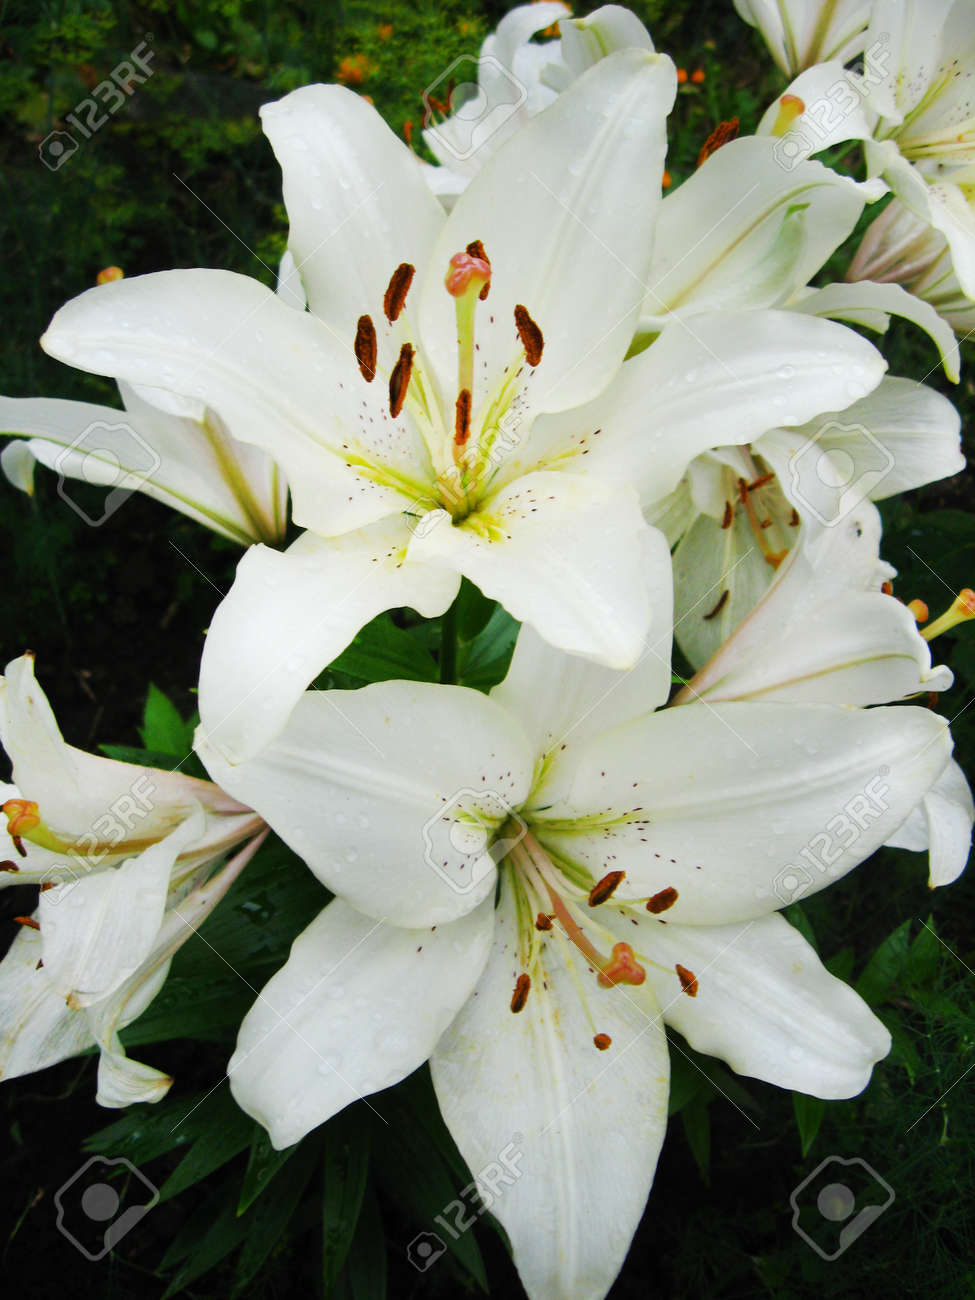 The Flowers Of Beautiful White Lilies Stock Photo, Picture And ...